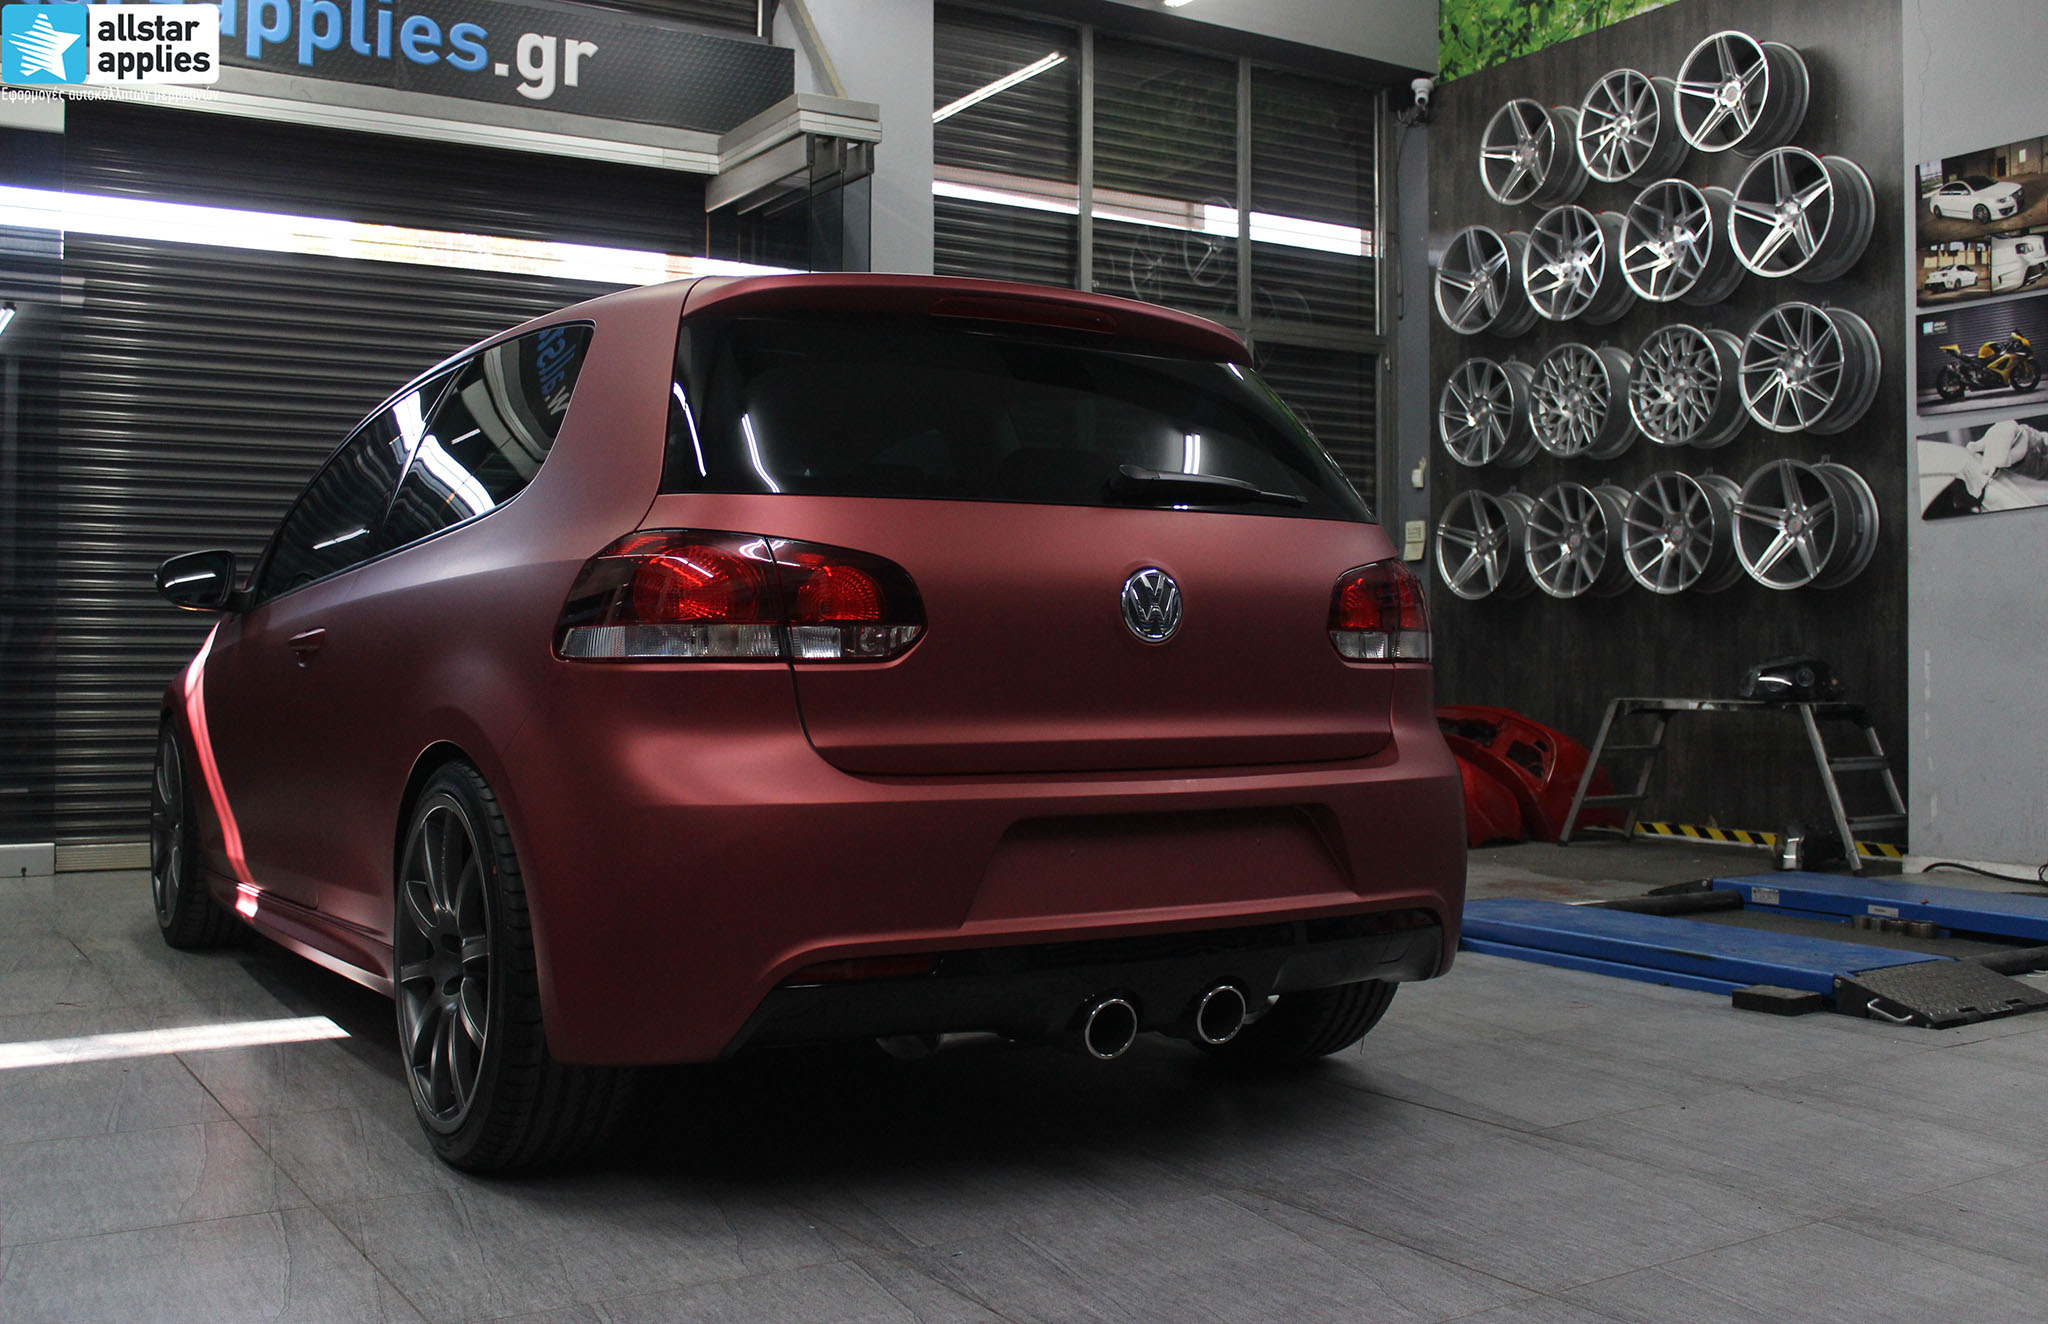 VW Golf 6 - Anodized Red (16)